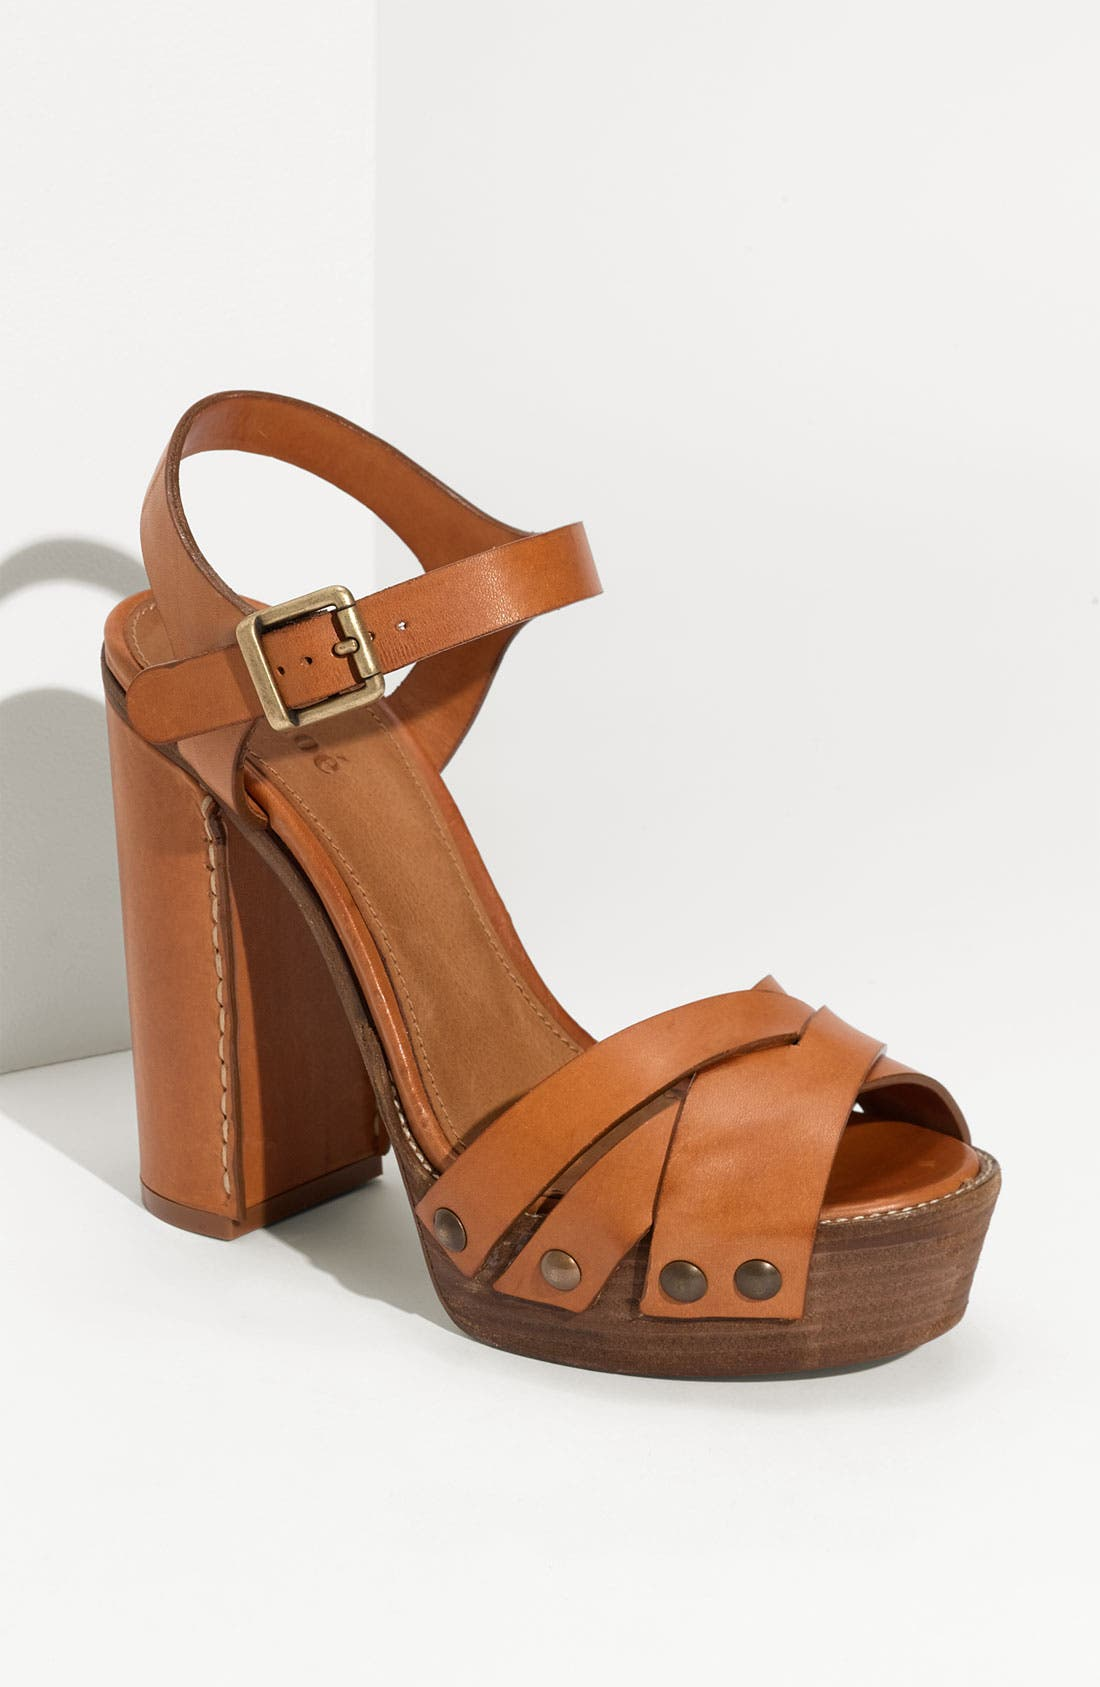 Alternate Image 1 Selected - Chloé Platform Sandal